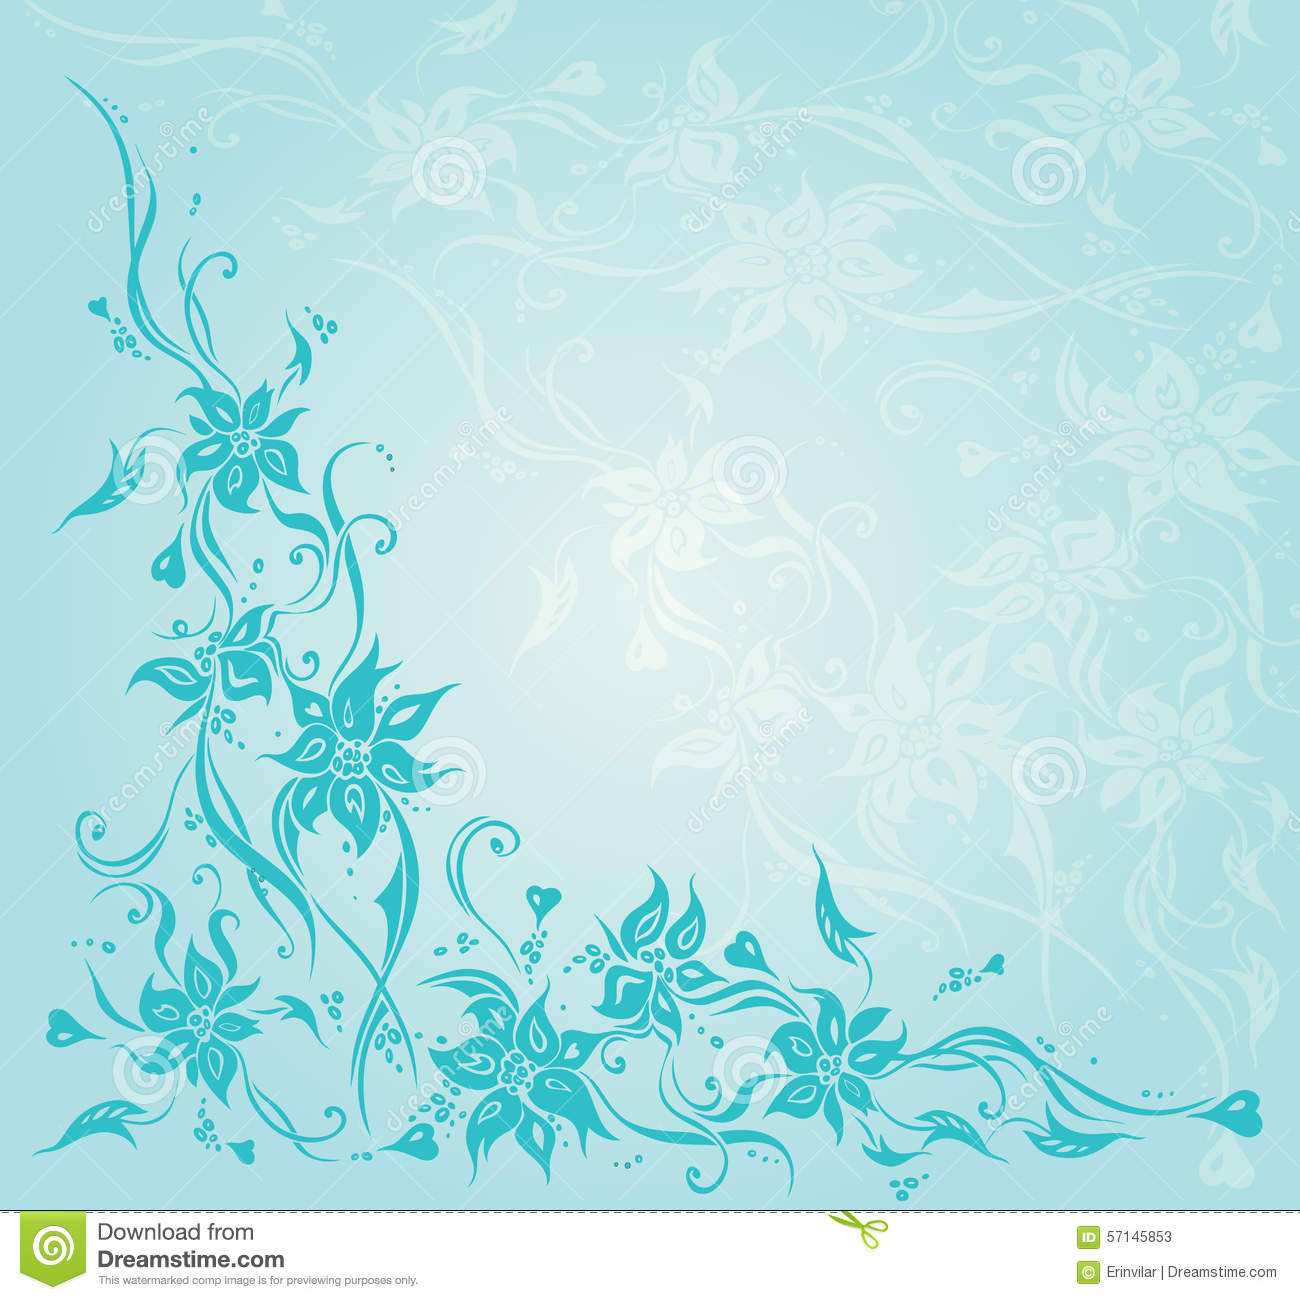 Turquoise Vintage Floral Invitation Wedding Background Design Stock